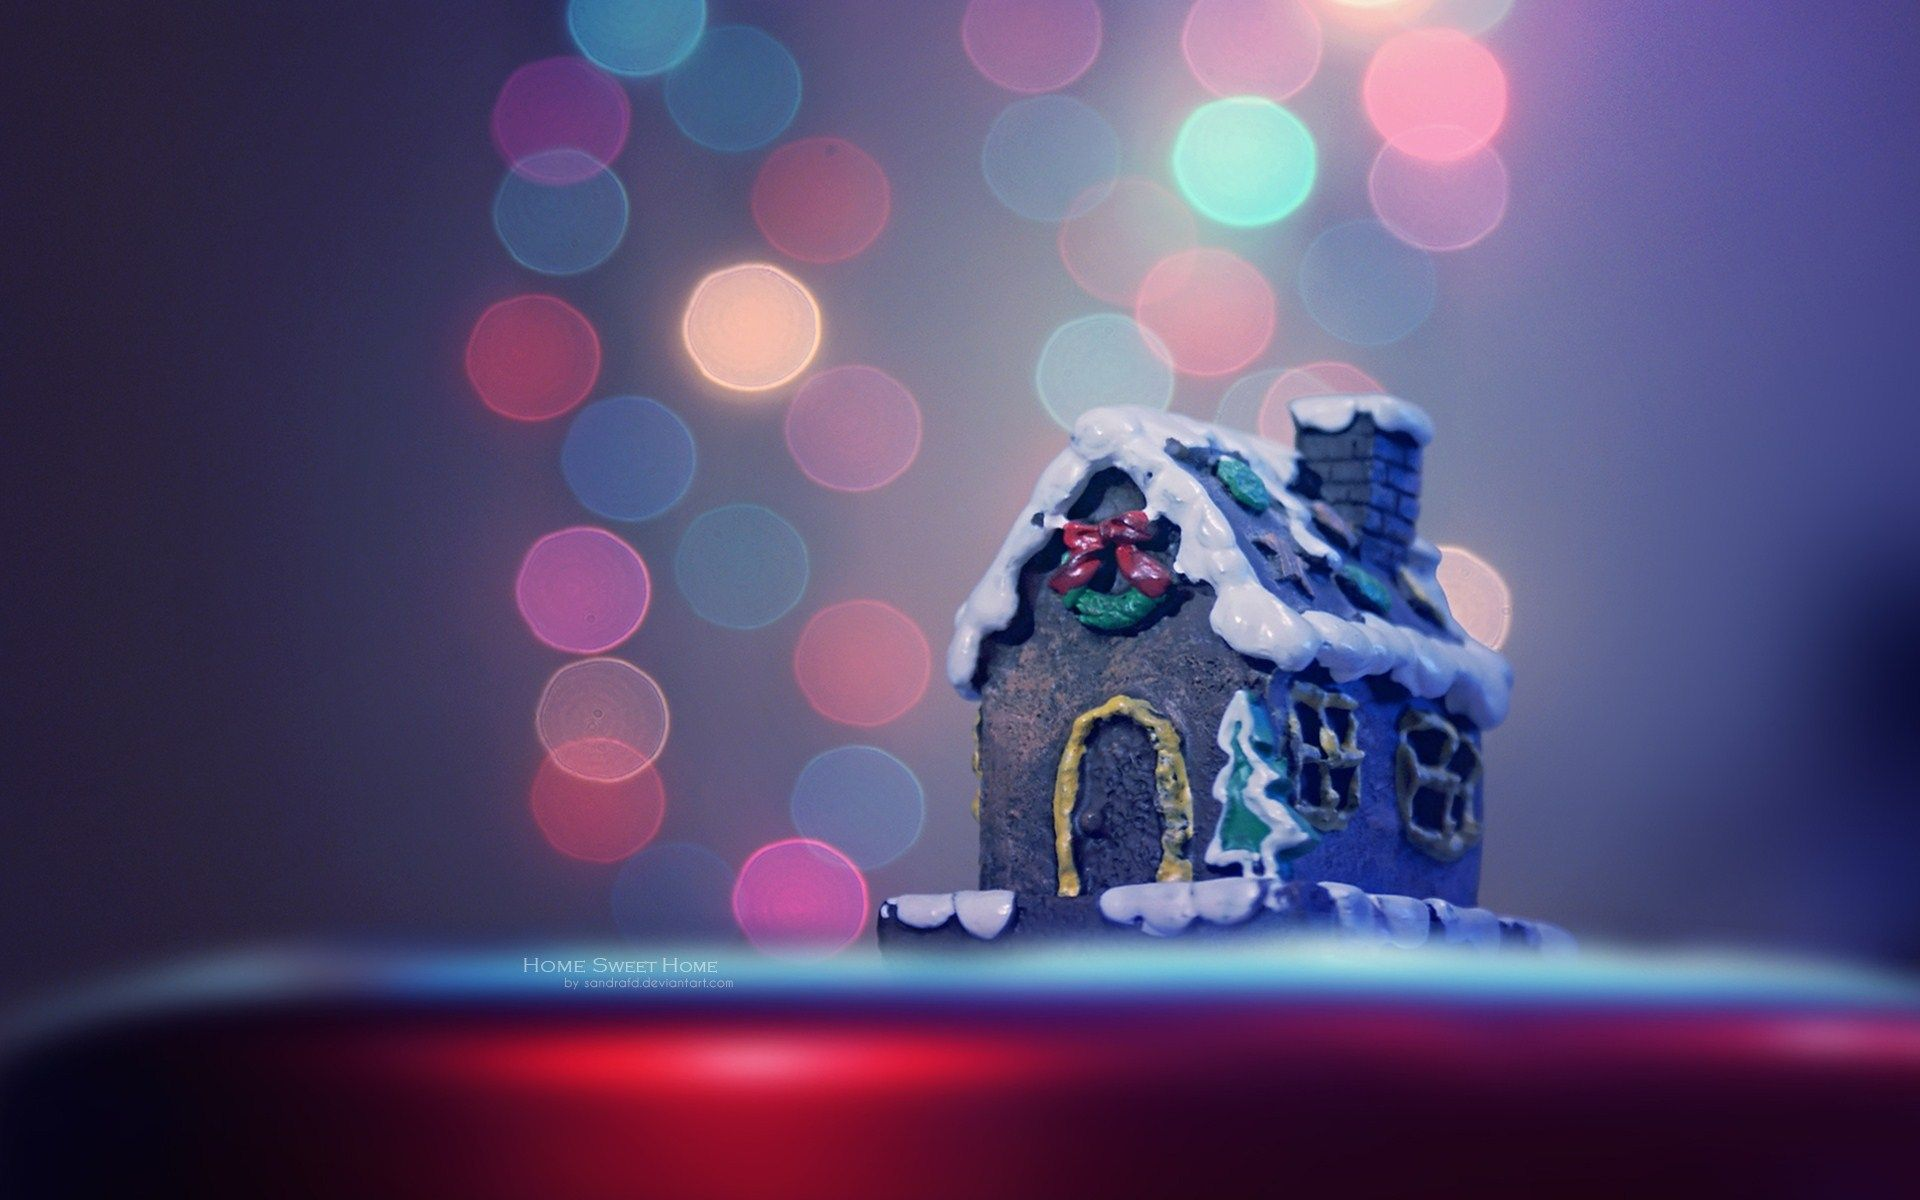 Weihnachtsbilder Hd.Christmas Home High Definition Wallpapers For Free